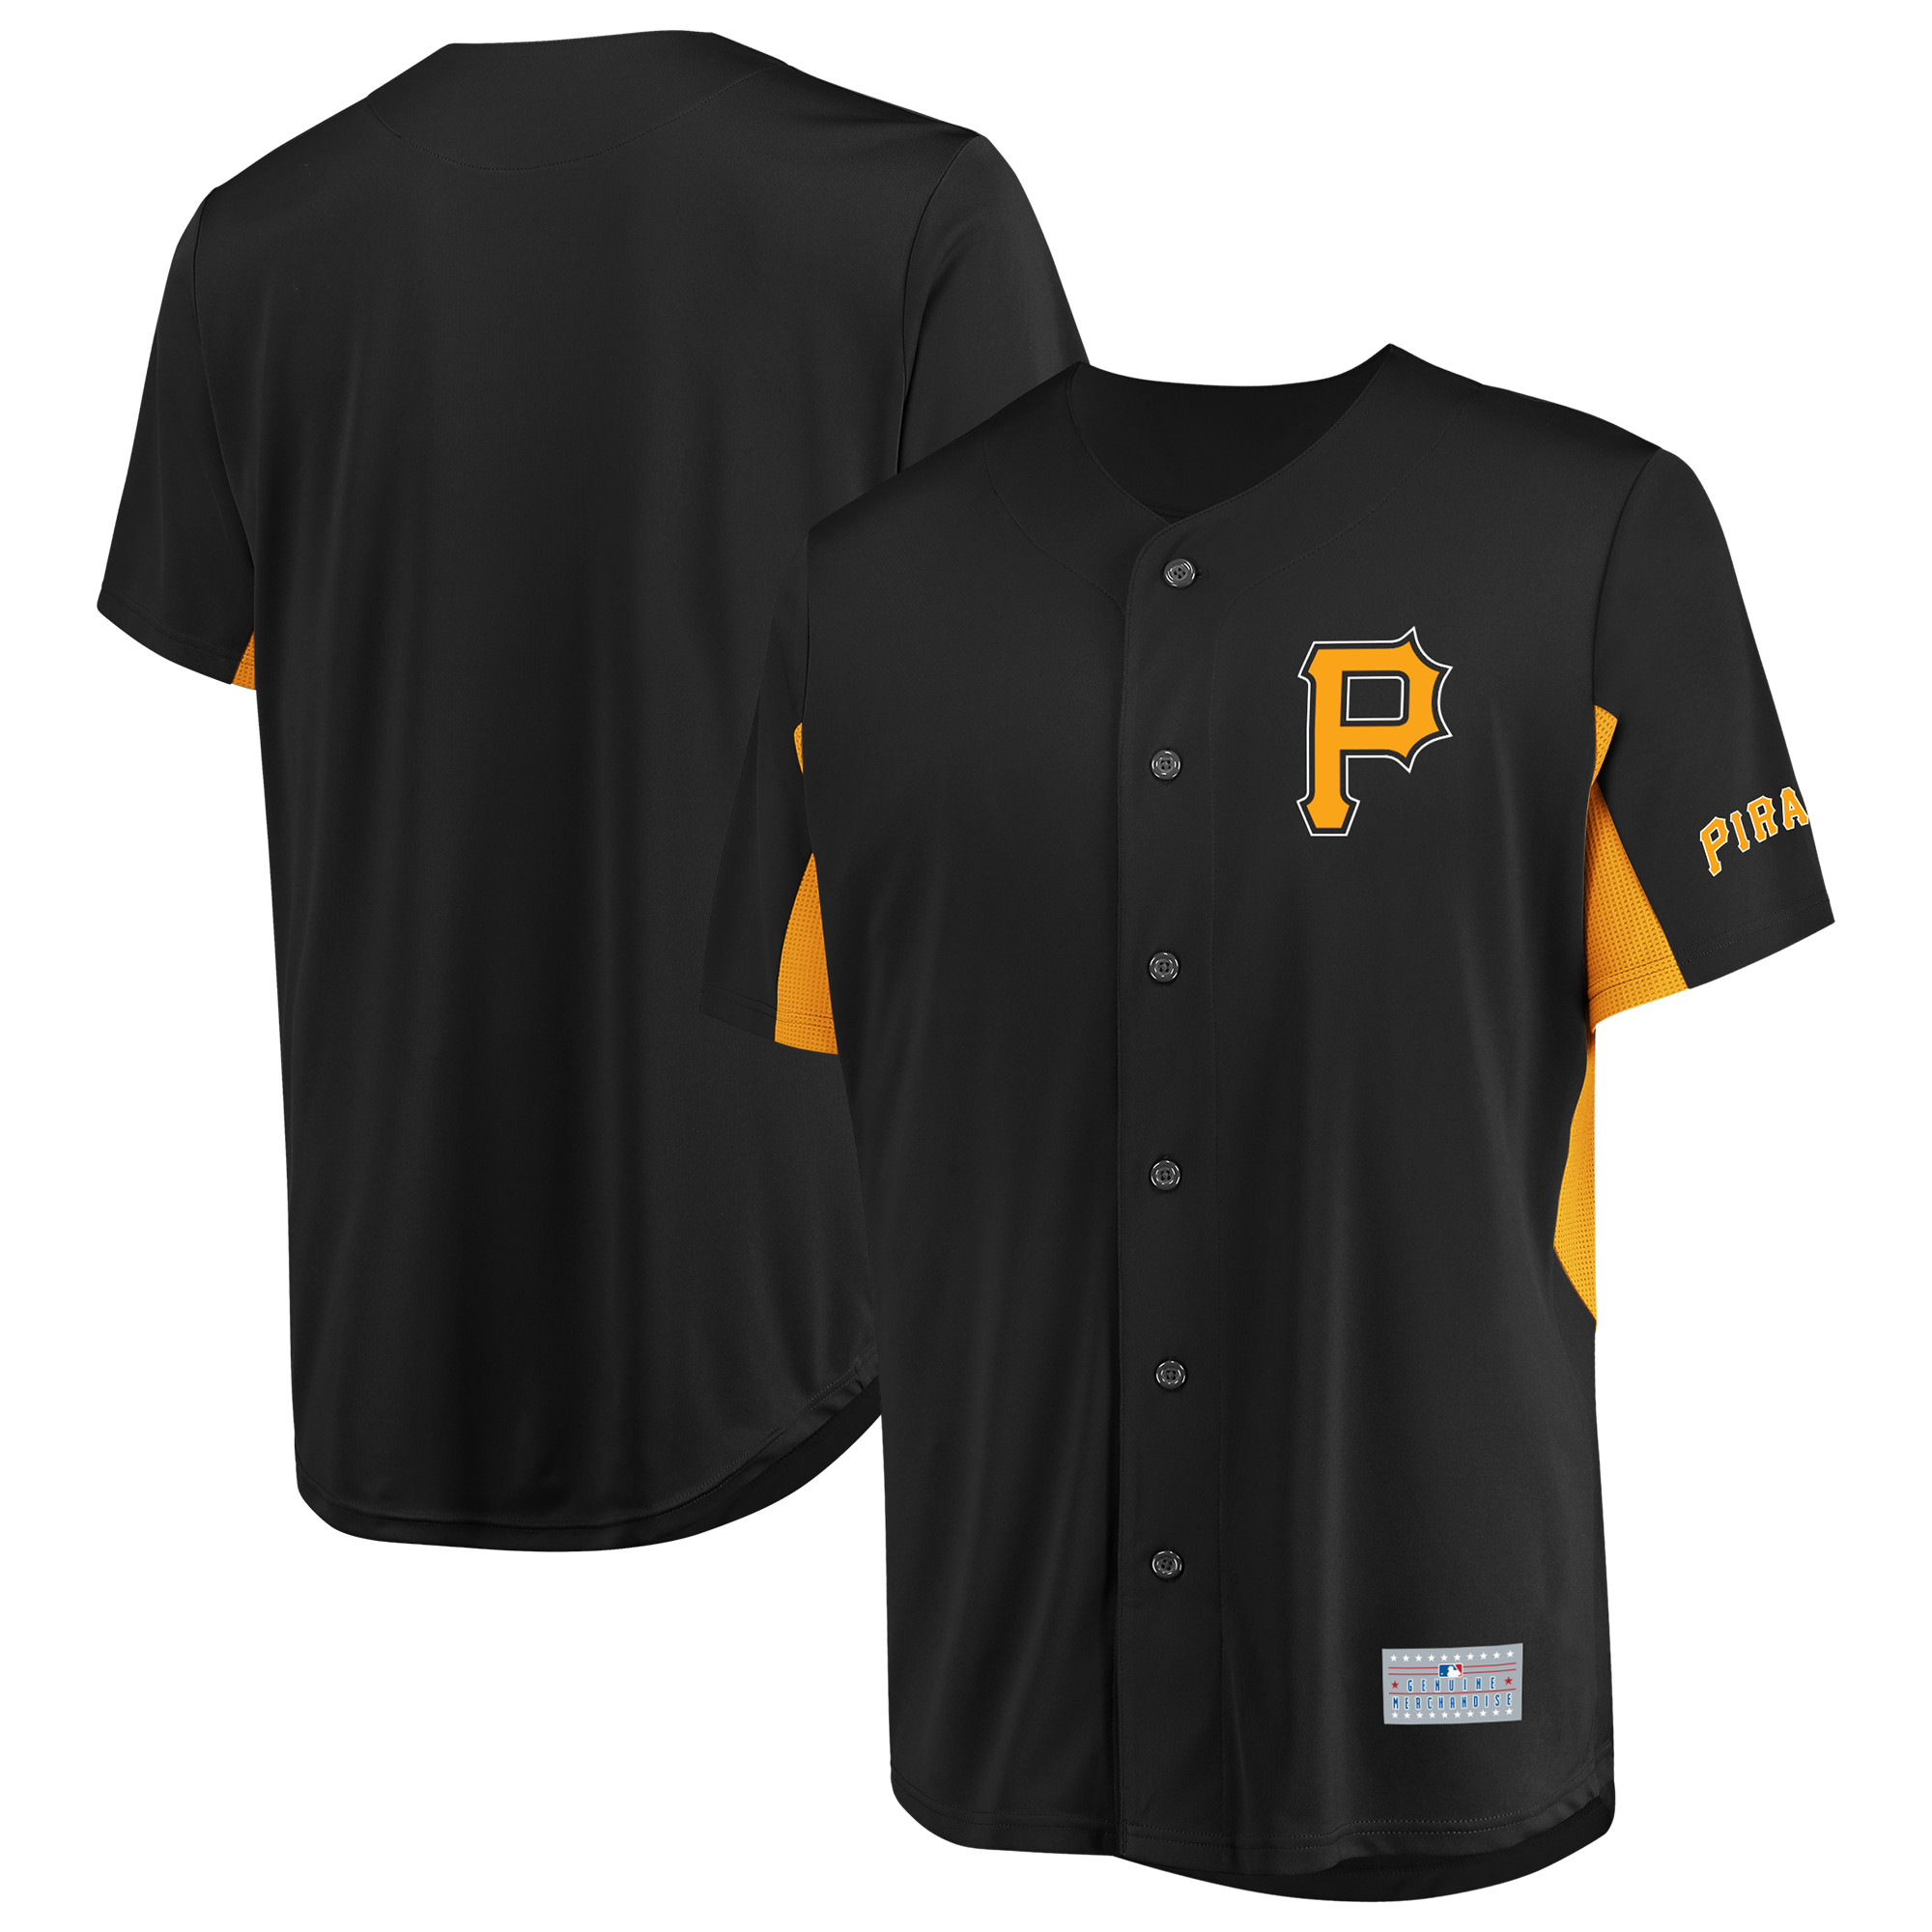 Men's Majestic Black Pittsburgh Pirates Champion Choice Jersey